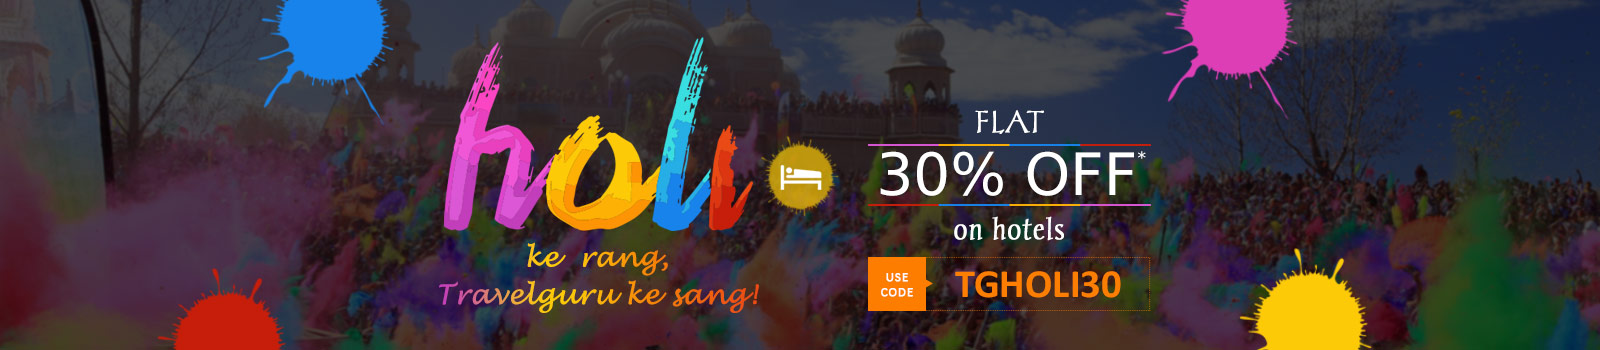 Flat 30% OFF* on hotels